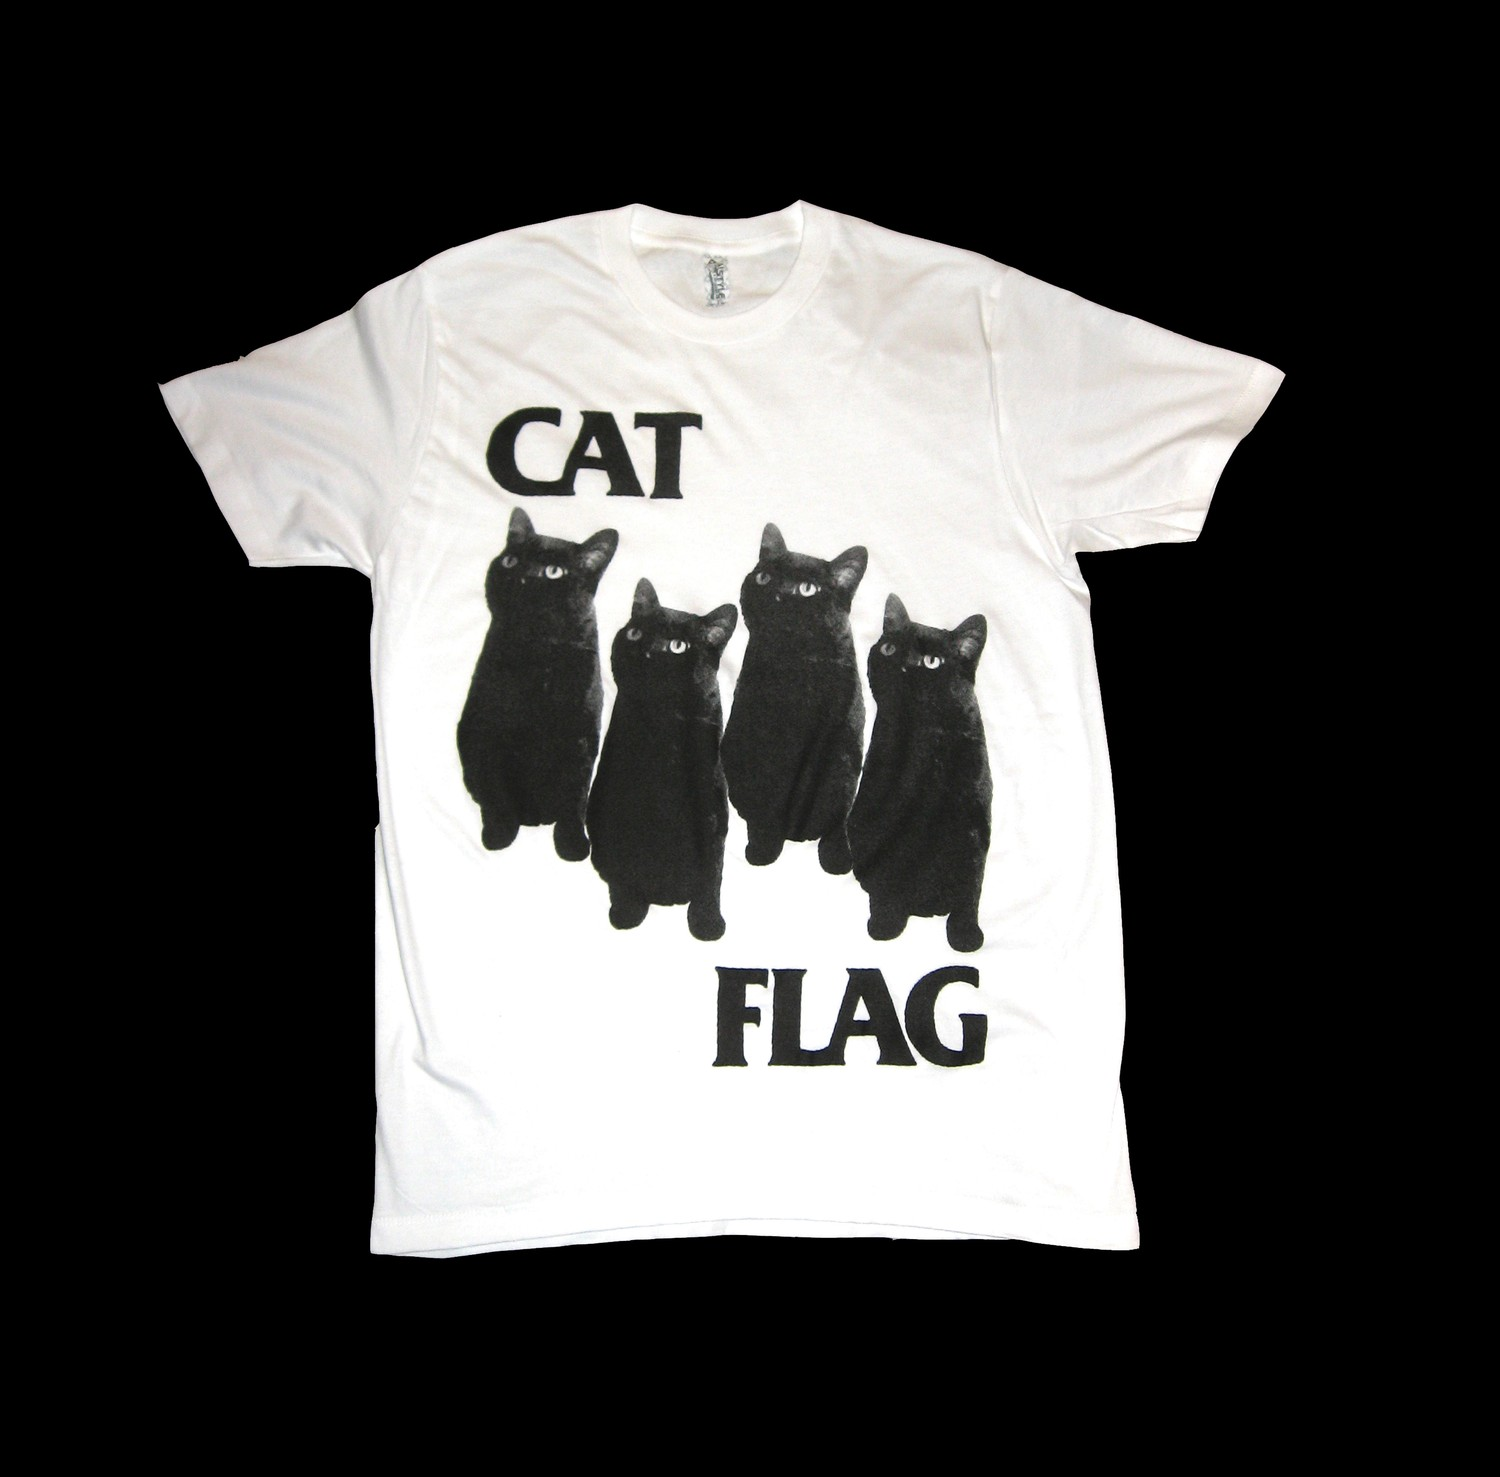 Cat Flag, Black Flag parody shirt